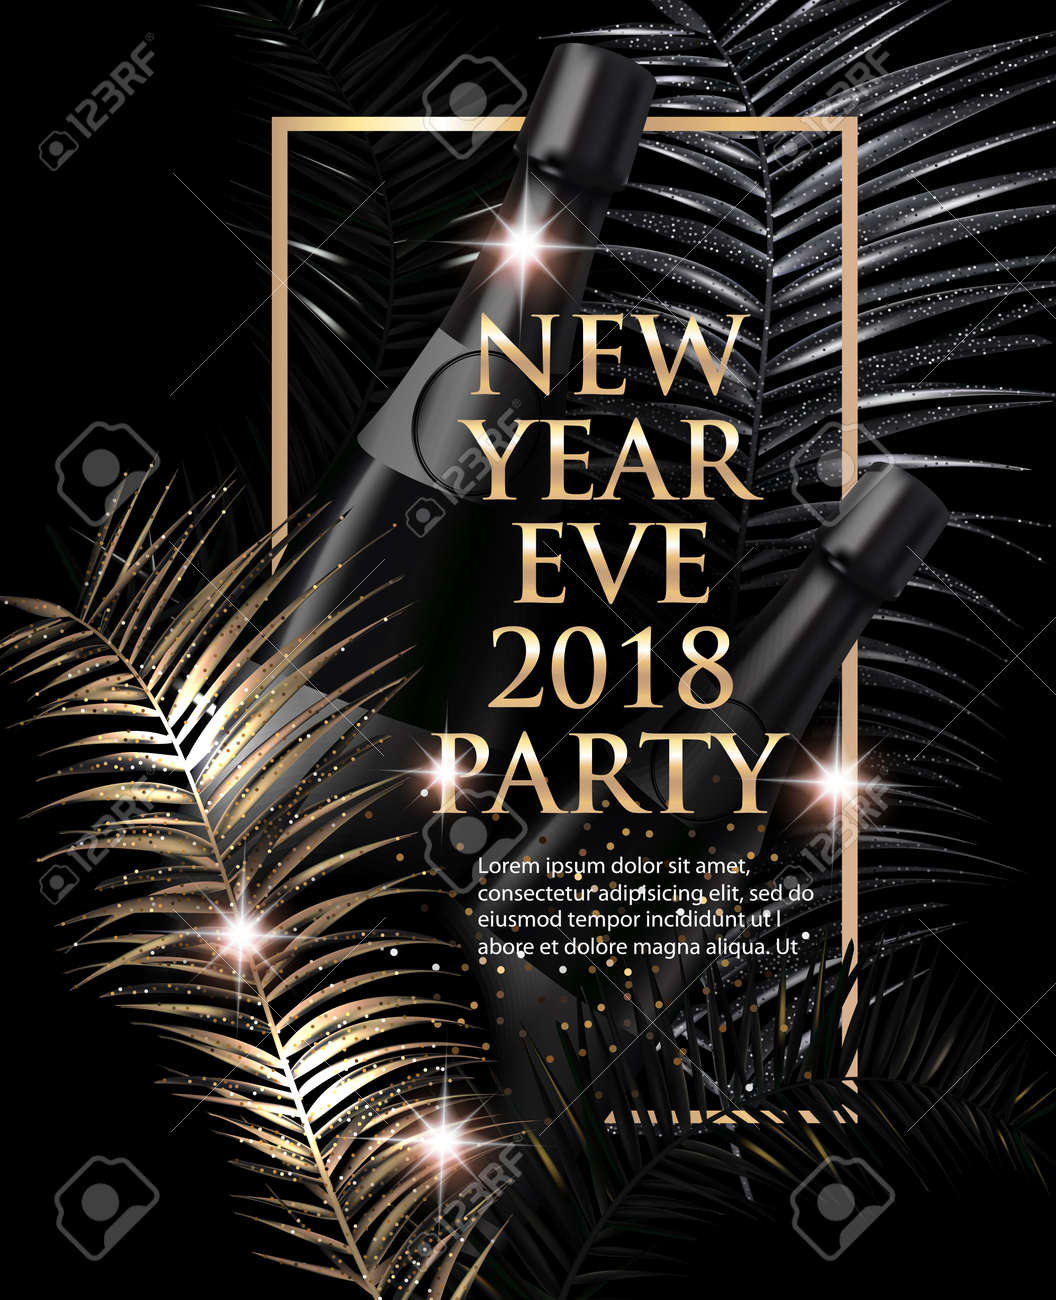 new year eve party invitation card with christmas tree branches gold and black vector